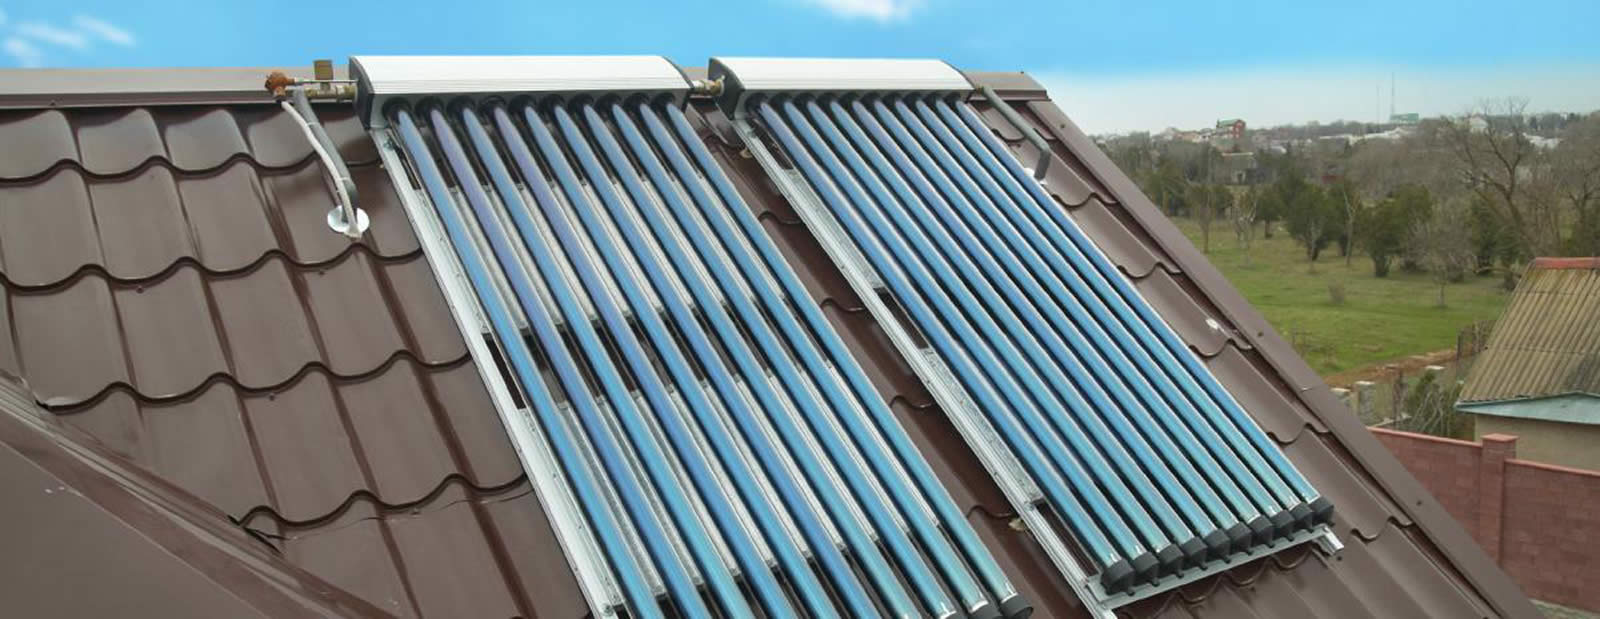 Peter Brown Solar Heating Services